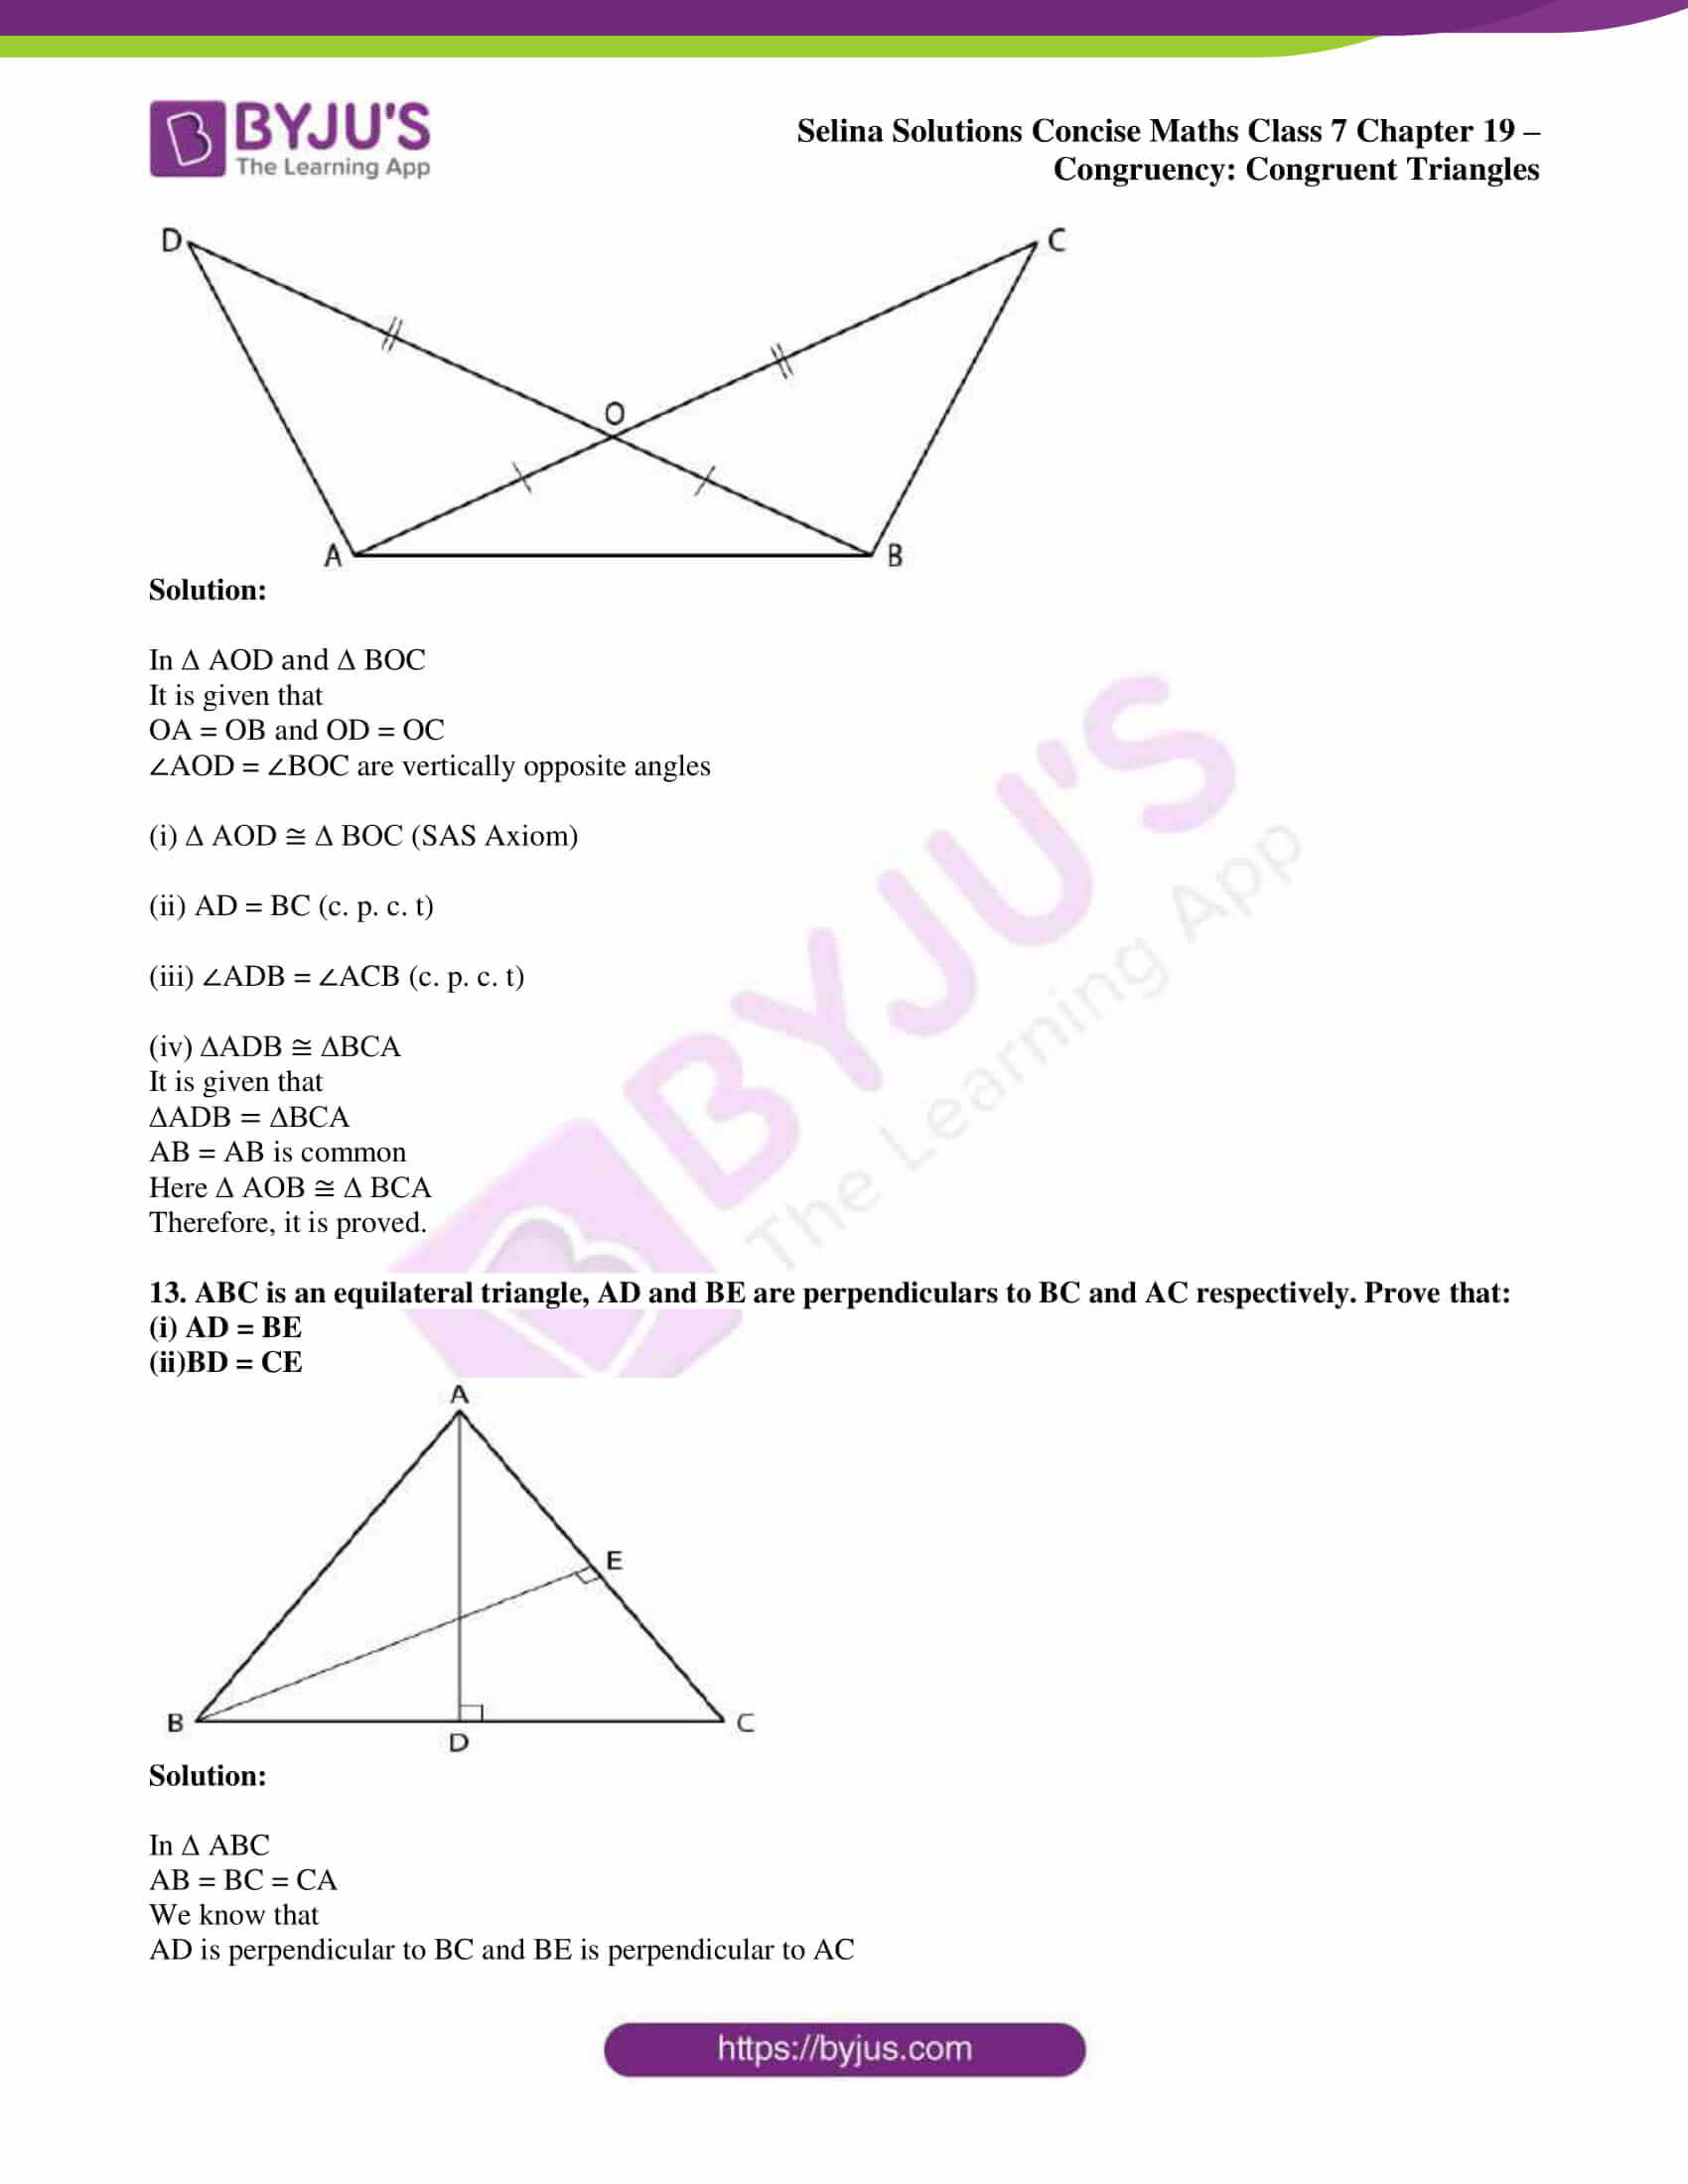 selina sol concise maths class 7 chapter 19 09